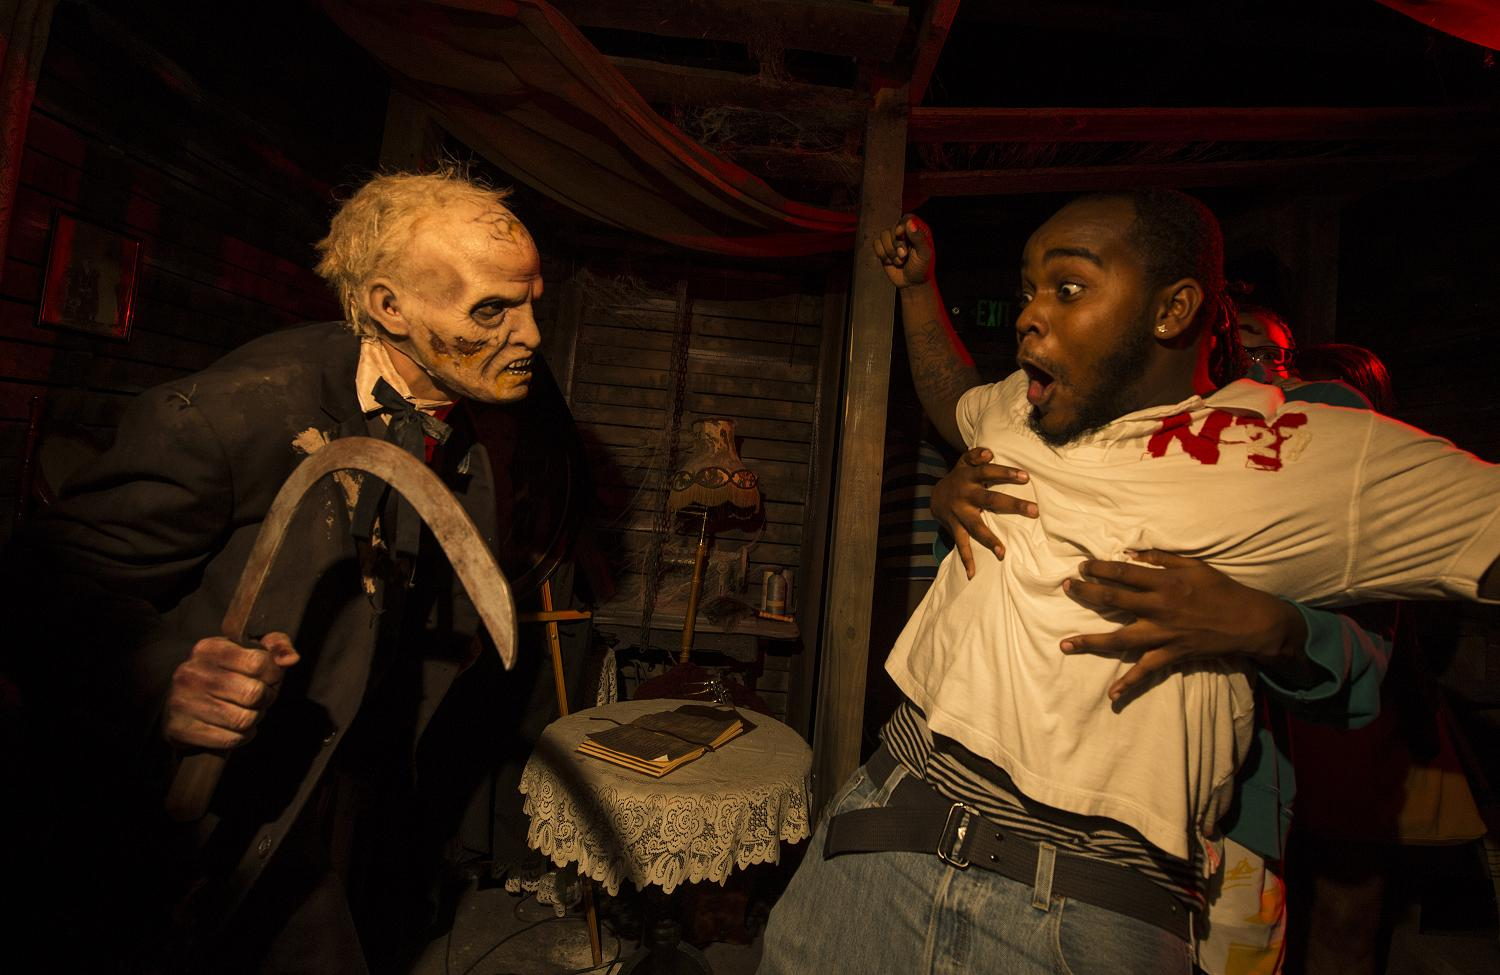 review: universal orlando has hit a home run with halloween horror